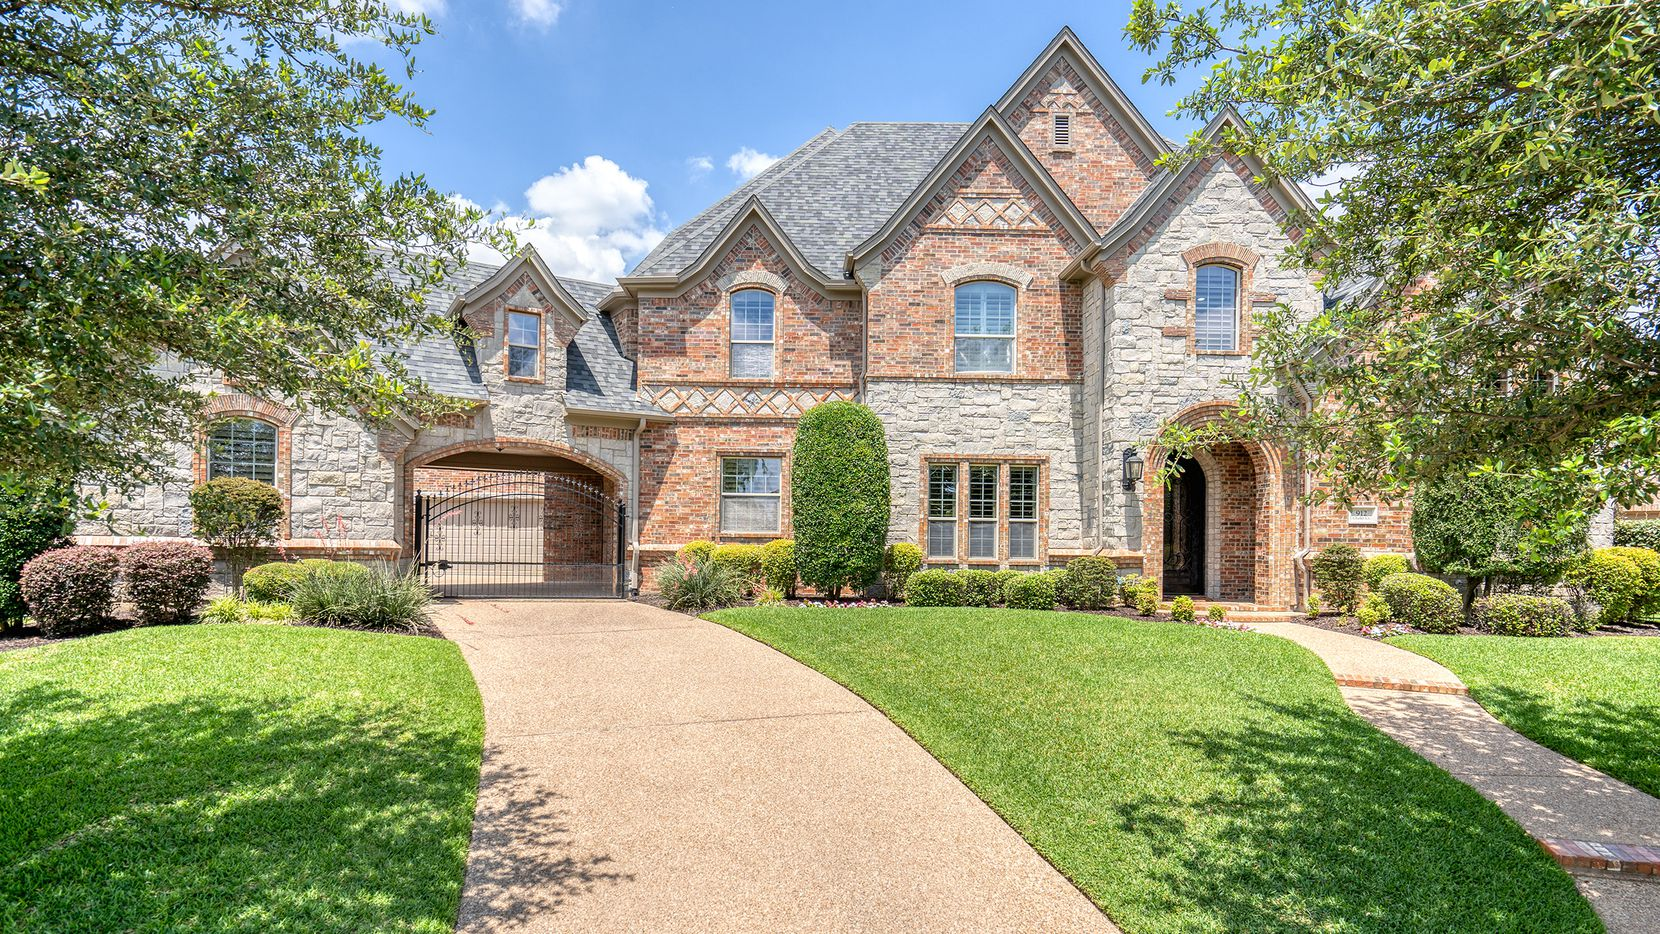 The five-bedroom home at 912 Chalet Court in Colleyville's Clairemont community has a saltwater pool, slide, outdoor kitchen and covered patio with a fireplace.